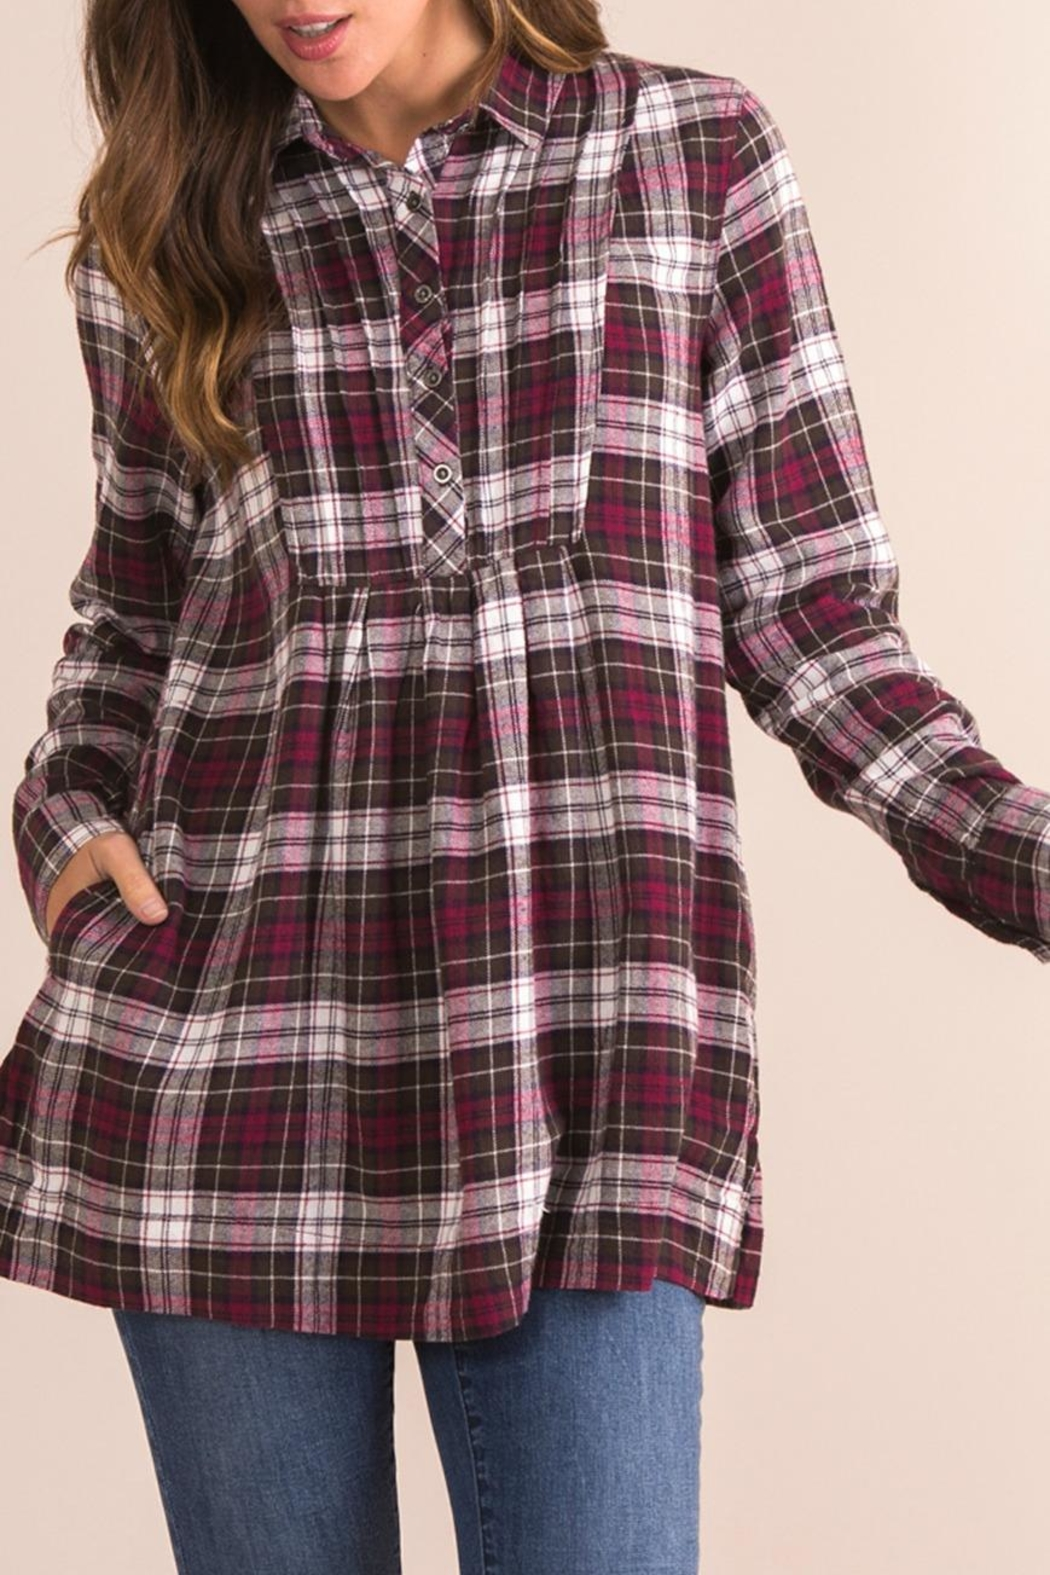 Simply Noelle Plaid Plum Top - Front Full Image